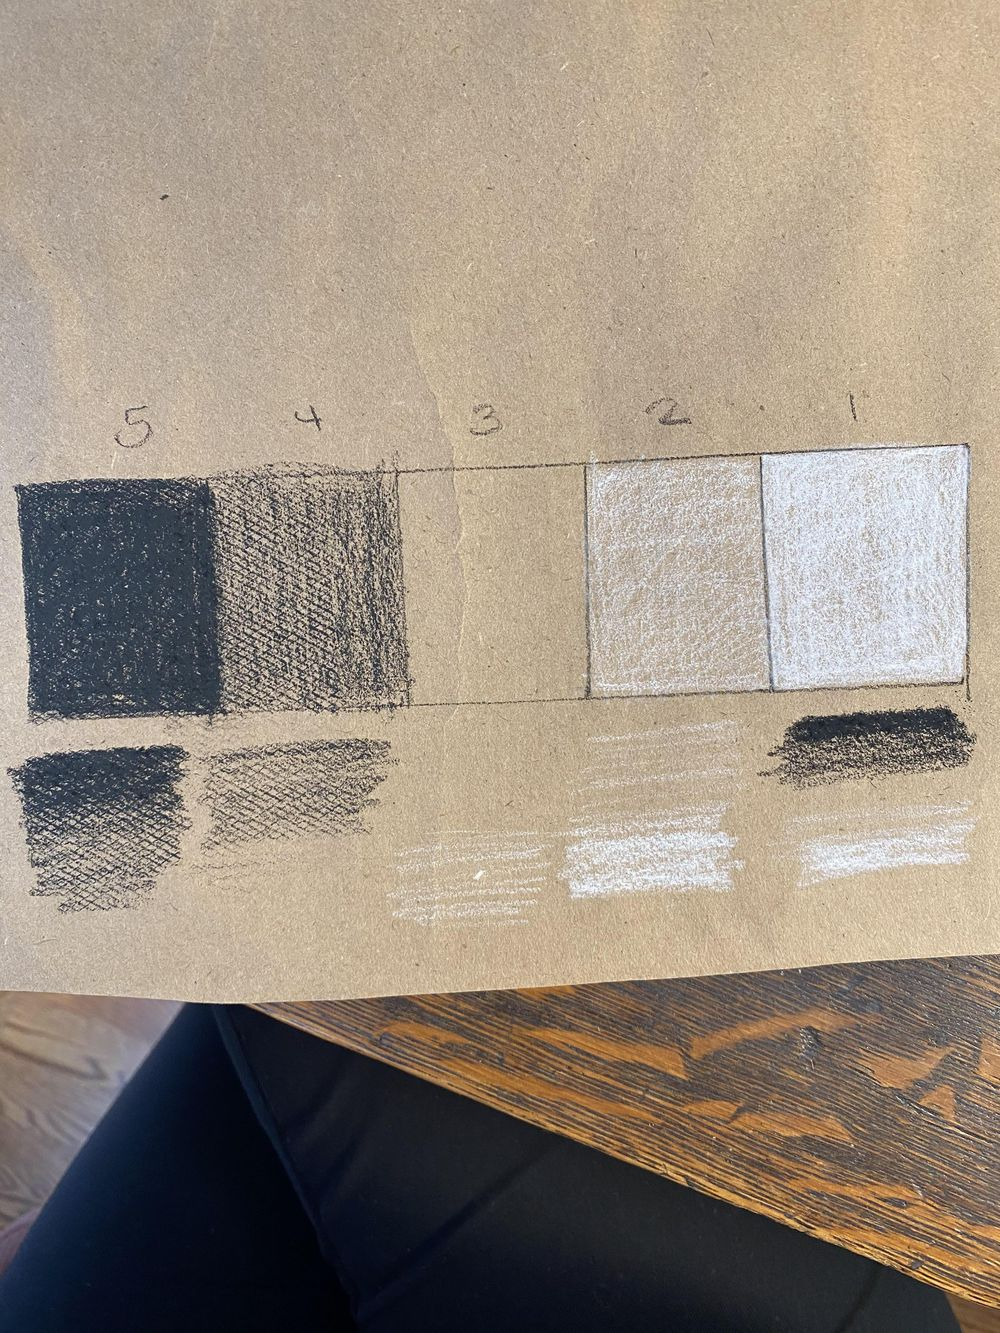 Value Scales and Gradation - image 2 - student project